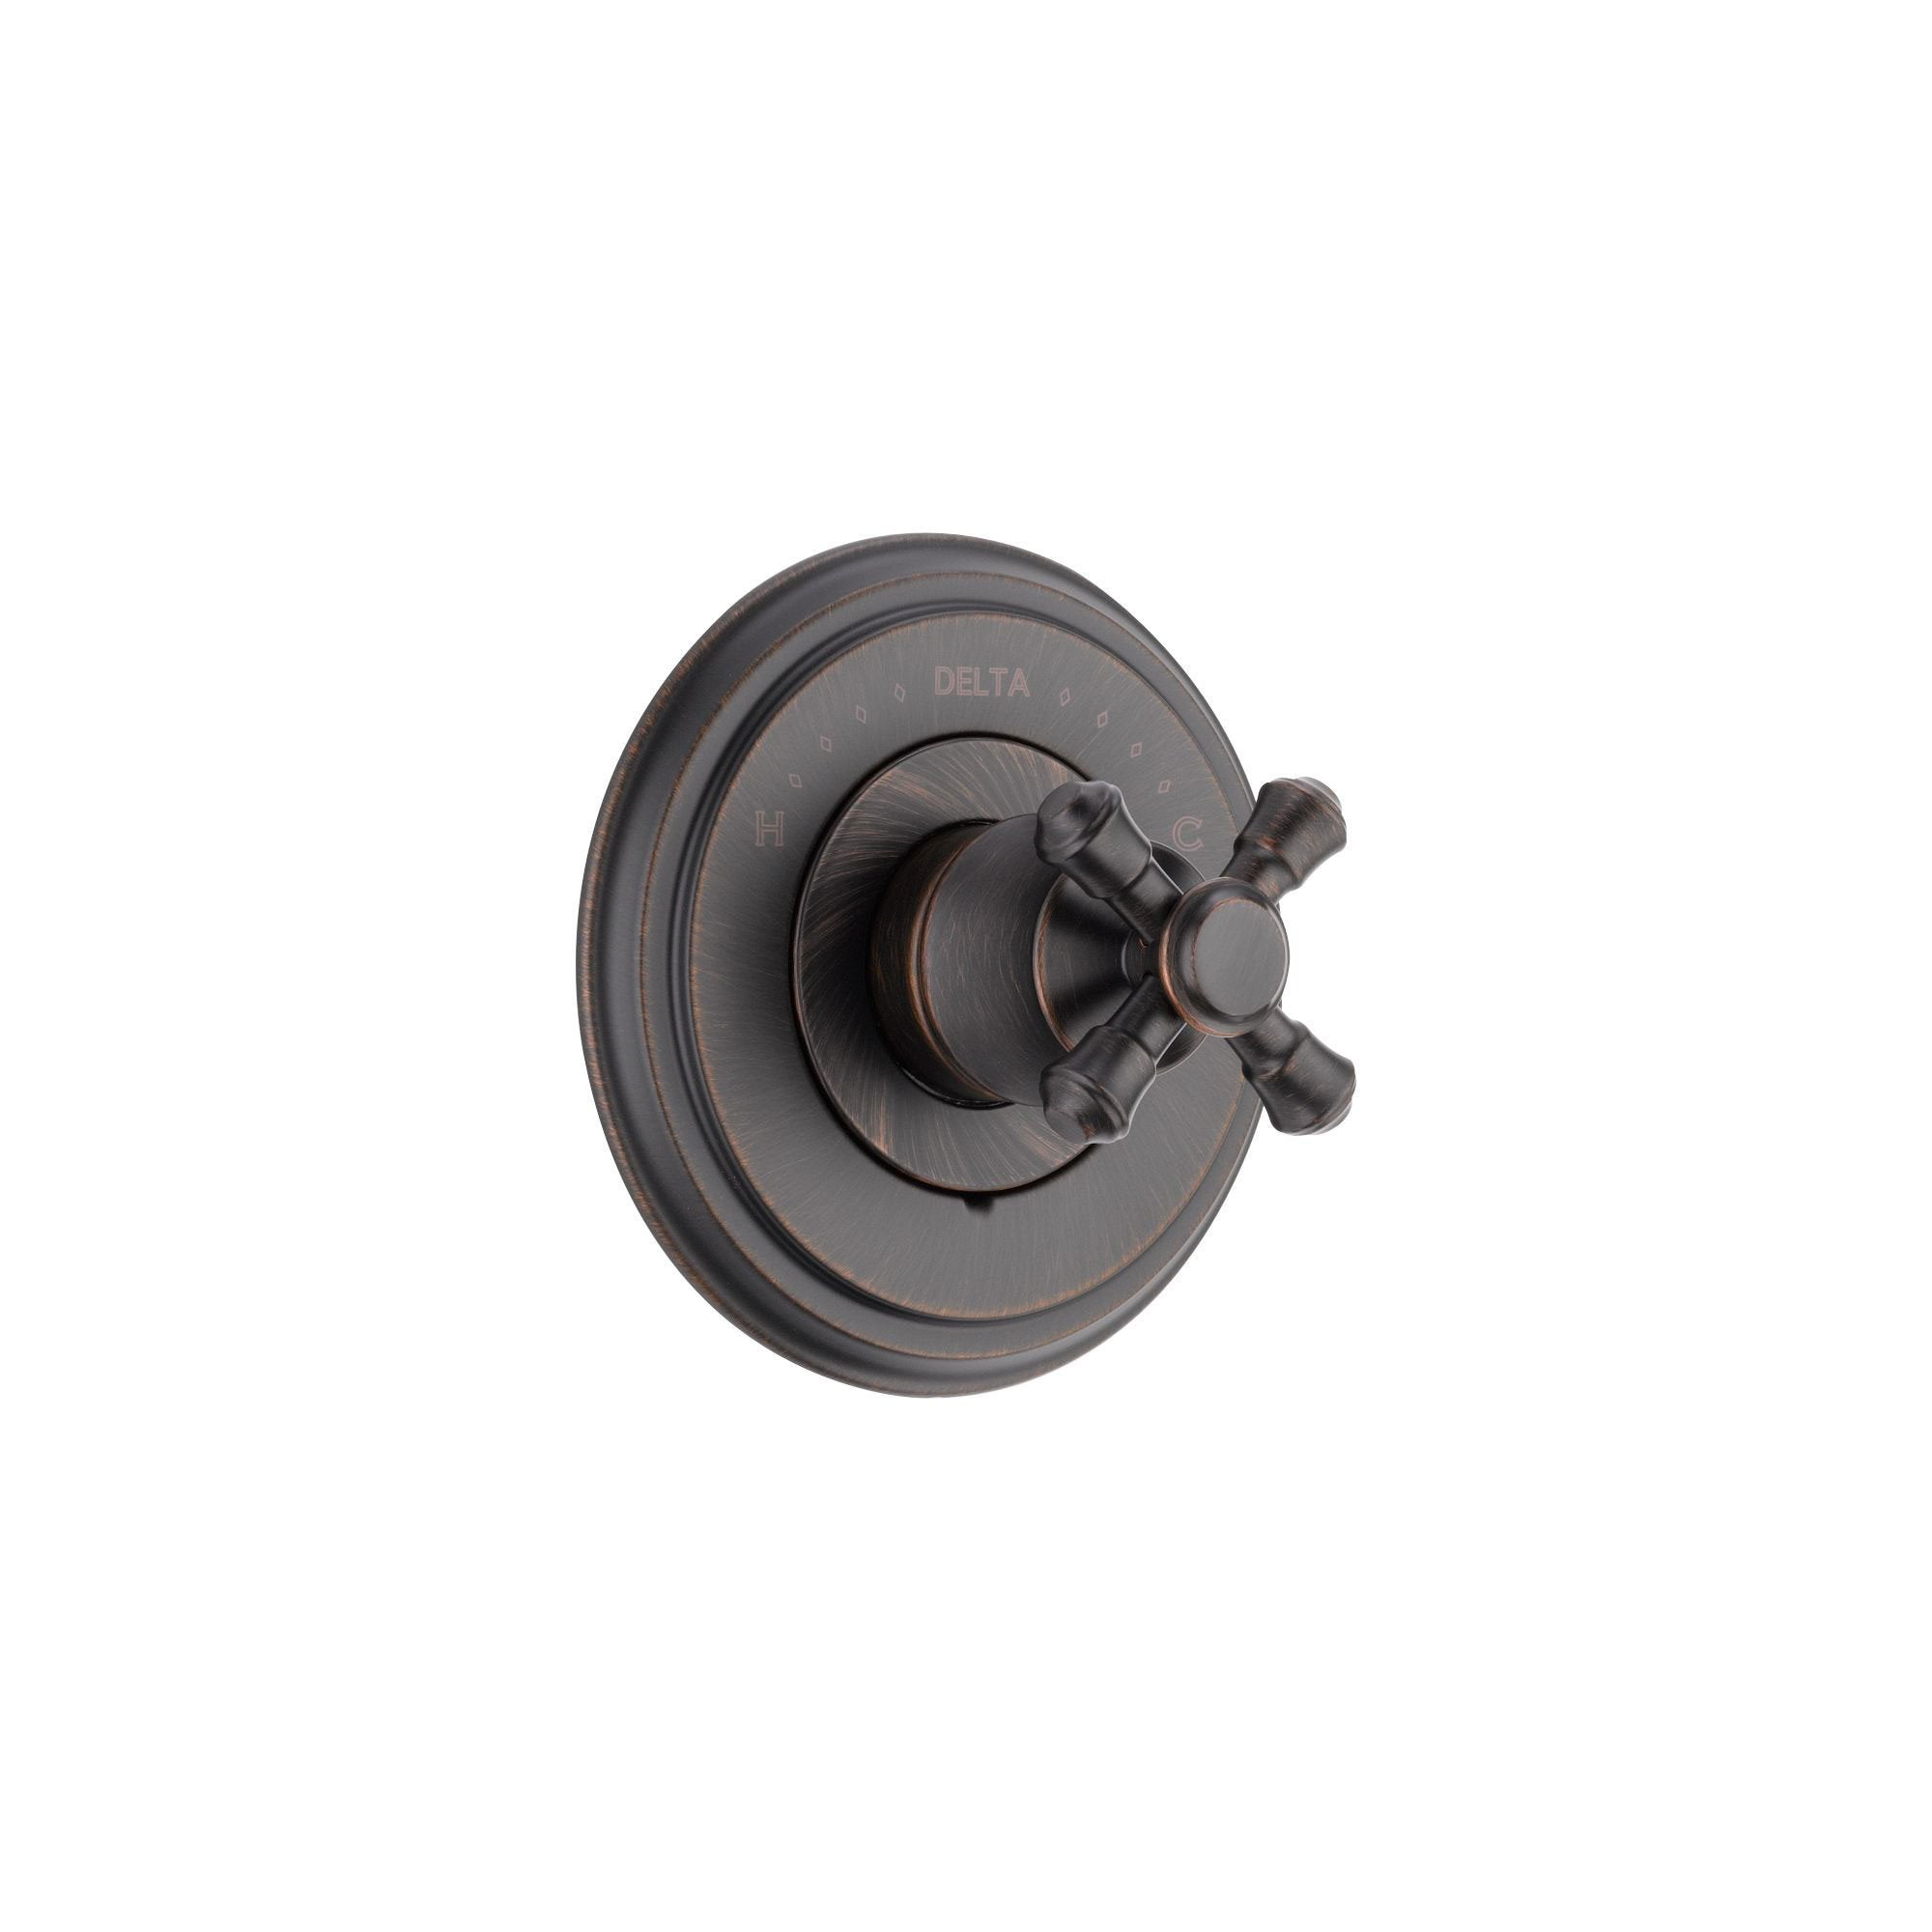 Delta Cassidy Monitor 14 Series Venetian Bronze Finish Pressure Balanced Shower Faucet Control Includes Rough In Valve With Stops And Single Cross